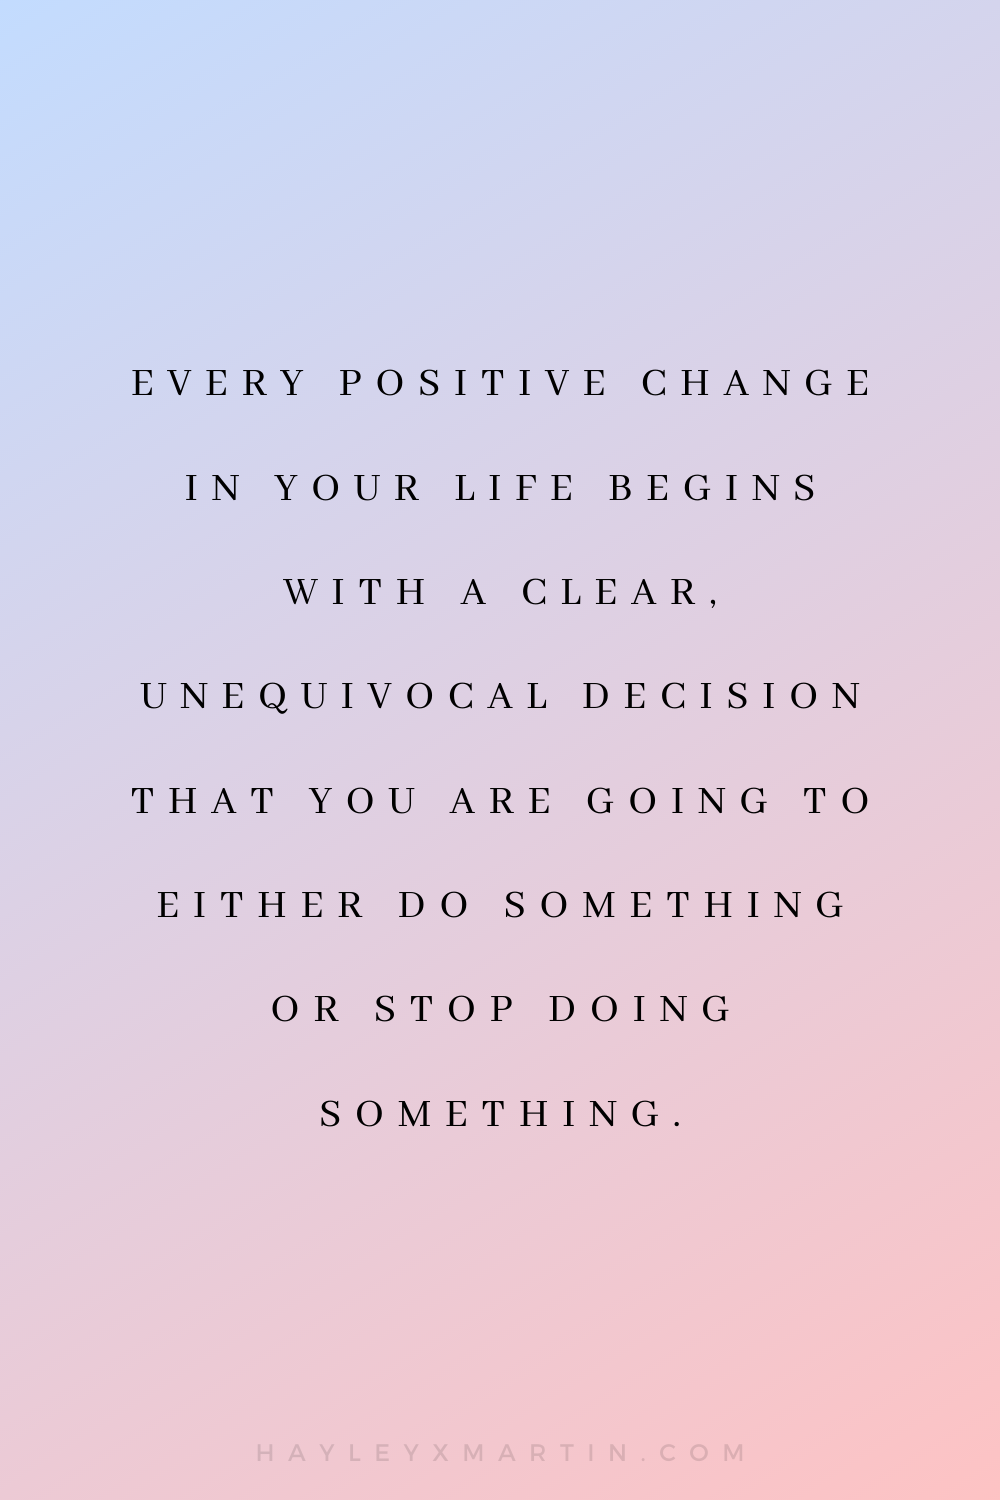 EVERY POSITIVE CHANGE IN YOUR LIFE BEGINS WITH A CLEAR, UNEQUIVOCAL DECISION THAT YOU ARE GOING TO EITHER DO SOMETHING OR STOP DOING SOMETHING | HAYLEYXMARTIN